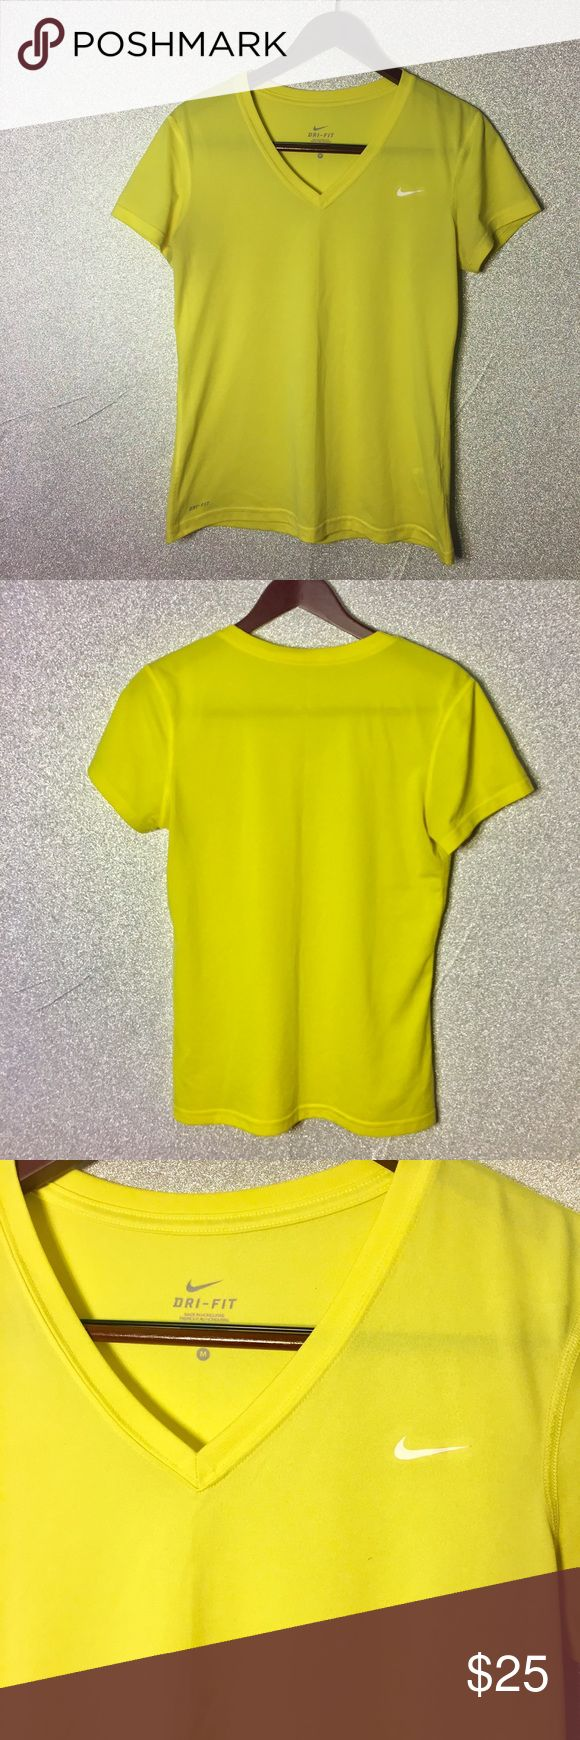 Nike Dri-Fit v neck short sleeve yellow shirt SZ M Nike Dri-Fit V neck fitness shirt bright yellow SZ M Preowned excellent condition no stains rips or holes Nike Tops Tees - Short Sleeve